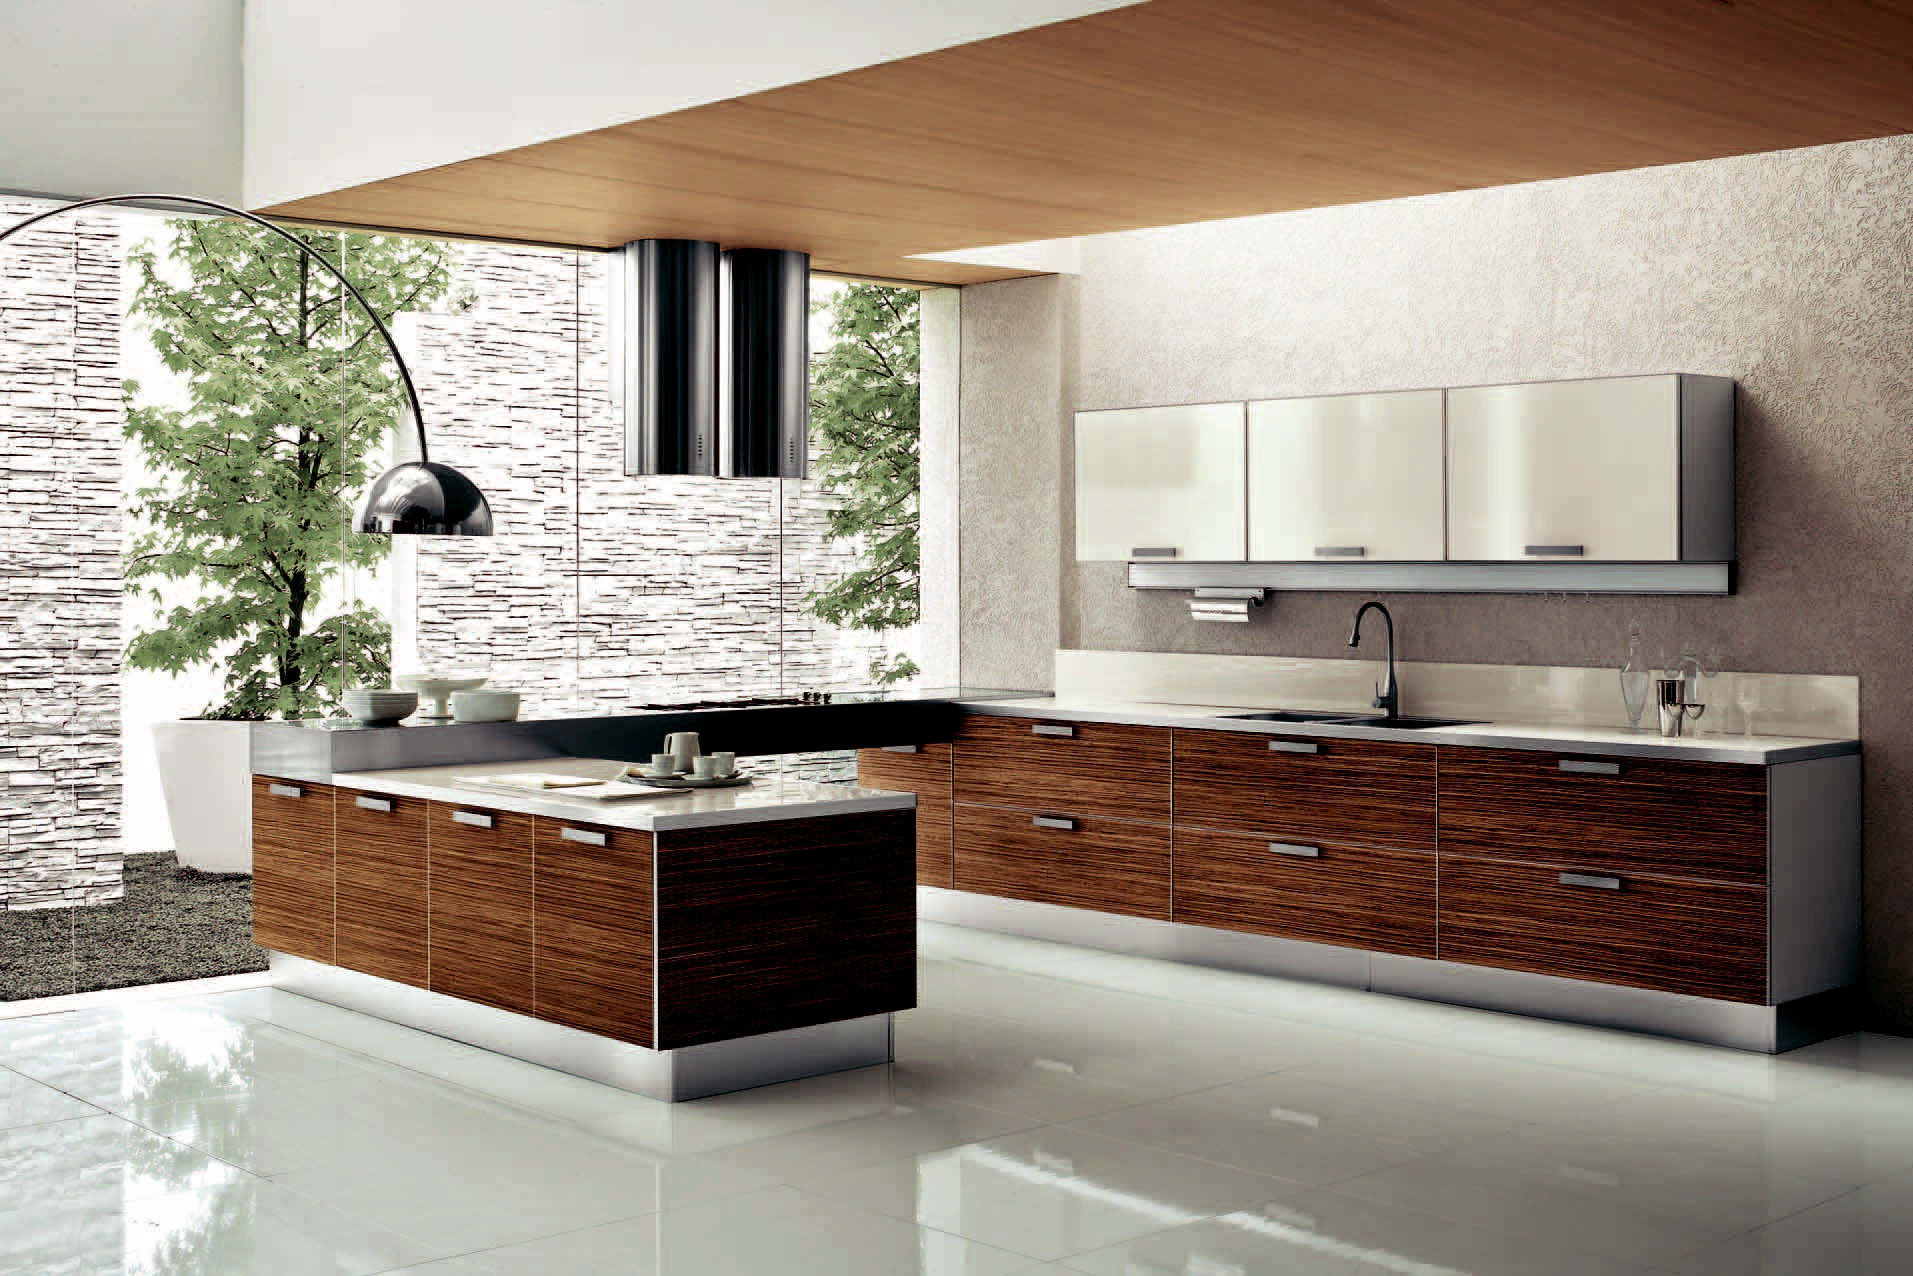 Beyond kitchens kitchen cupboards cape town kitchens for Kitchen for kitchen